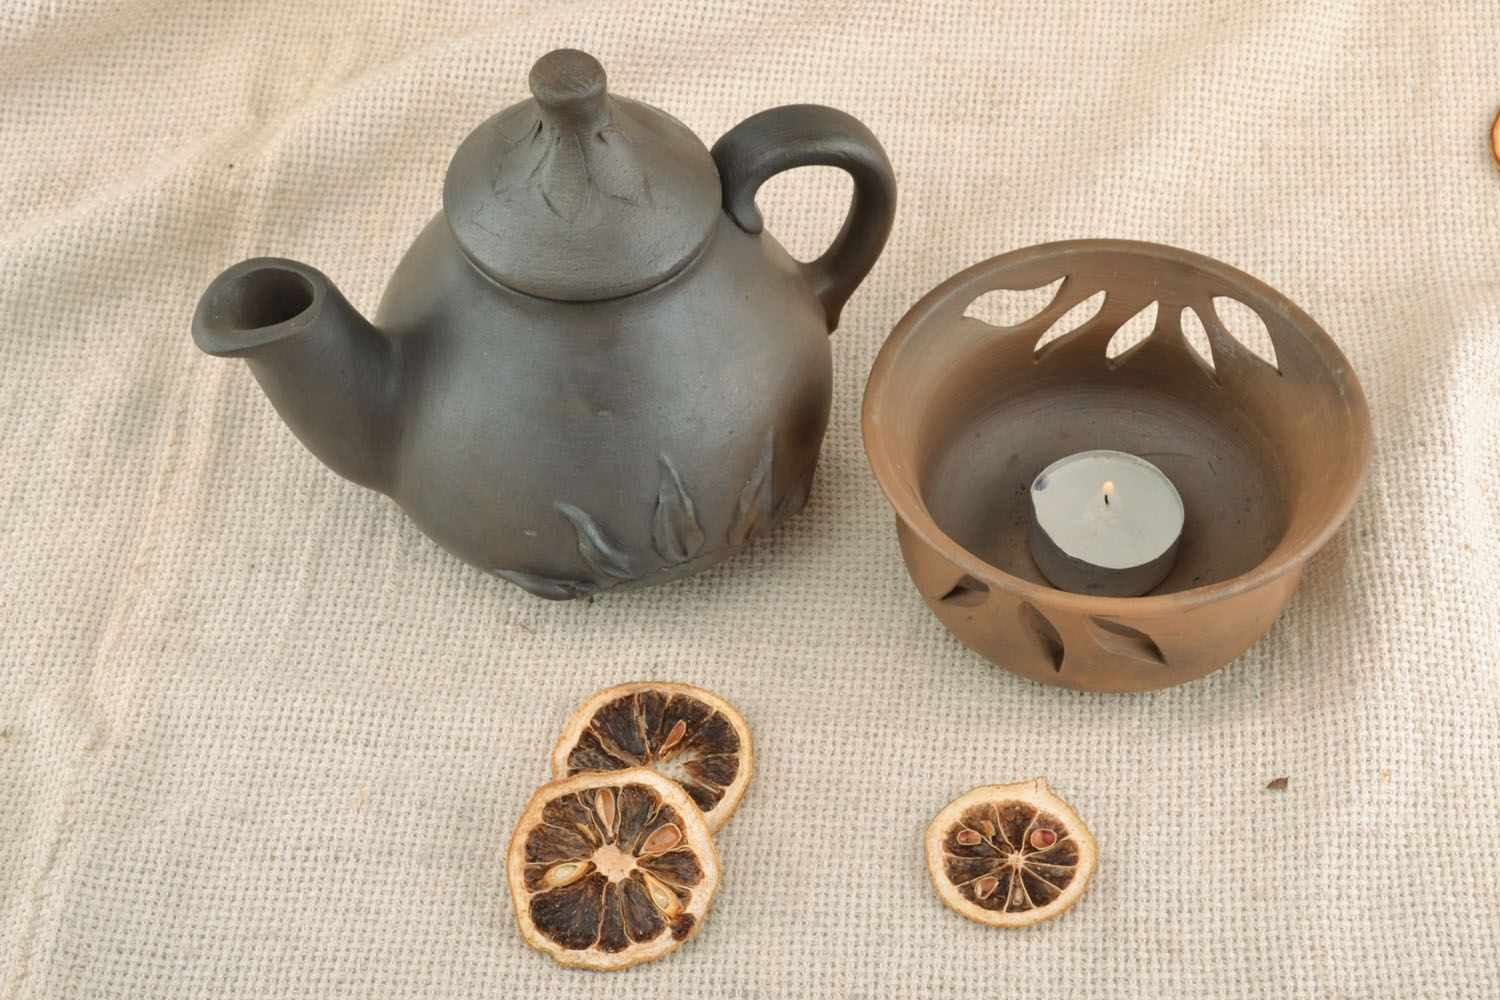 tea pots and coffee pots Homemade ceramic teapot - MADEheart.com